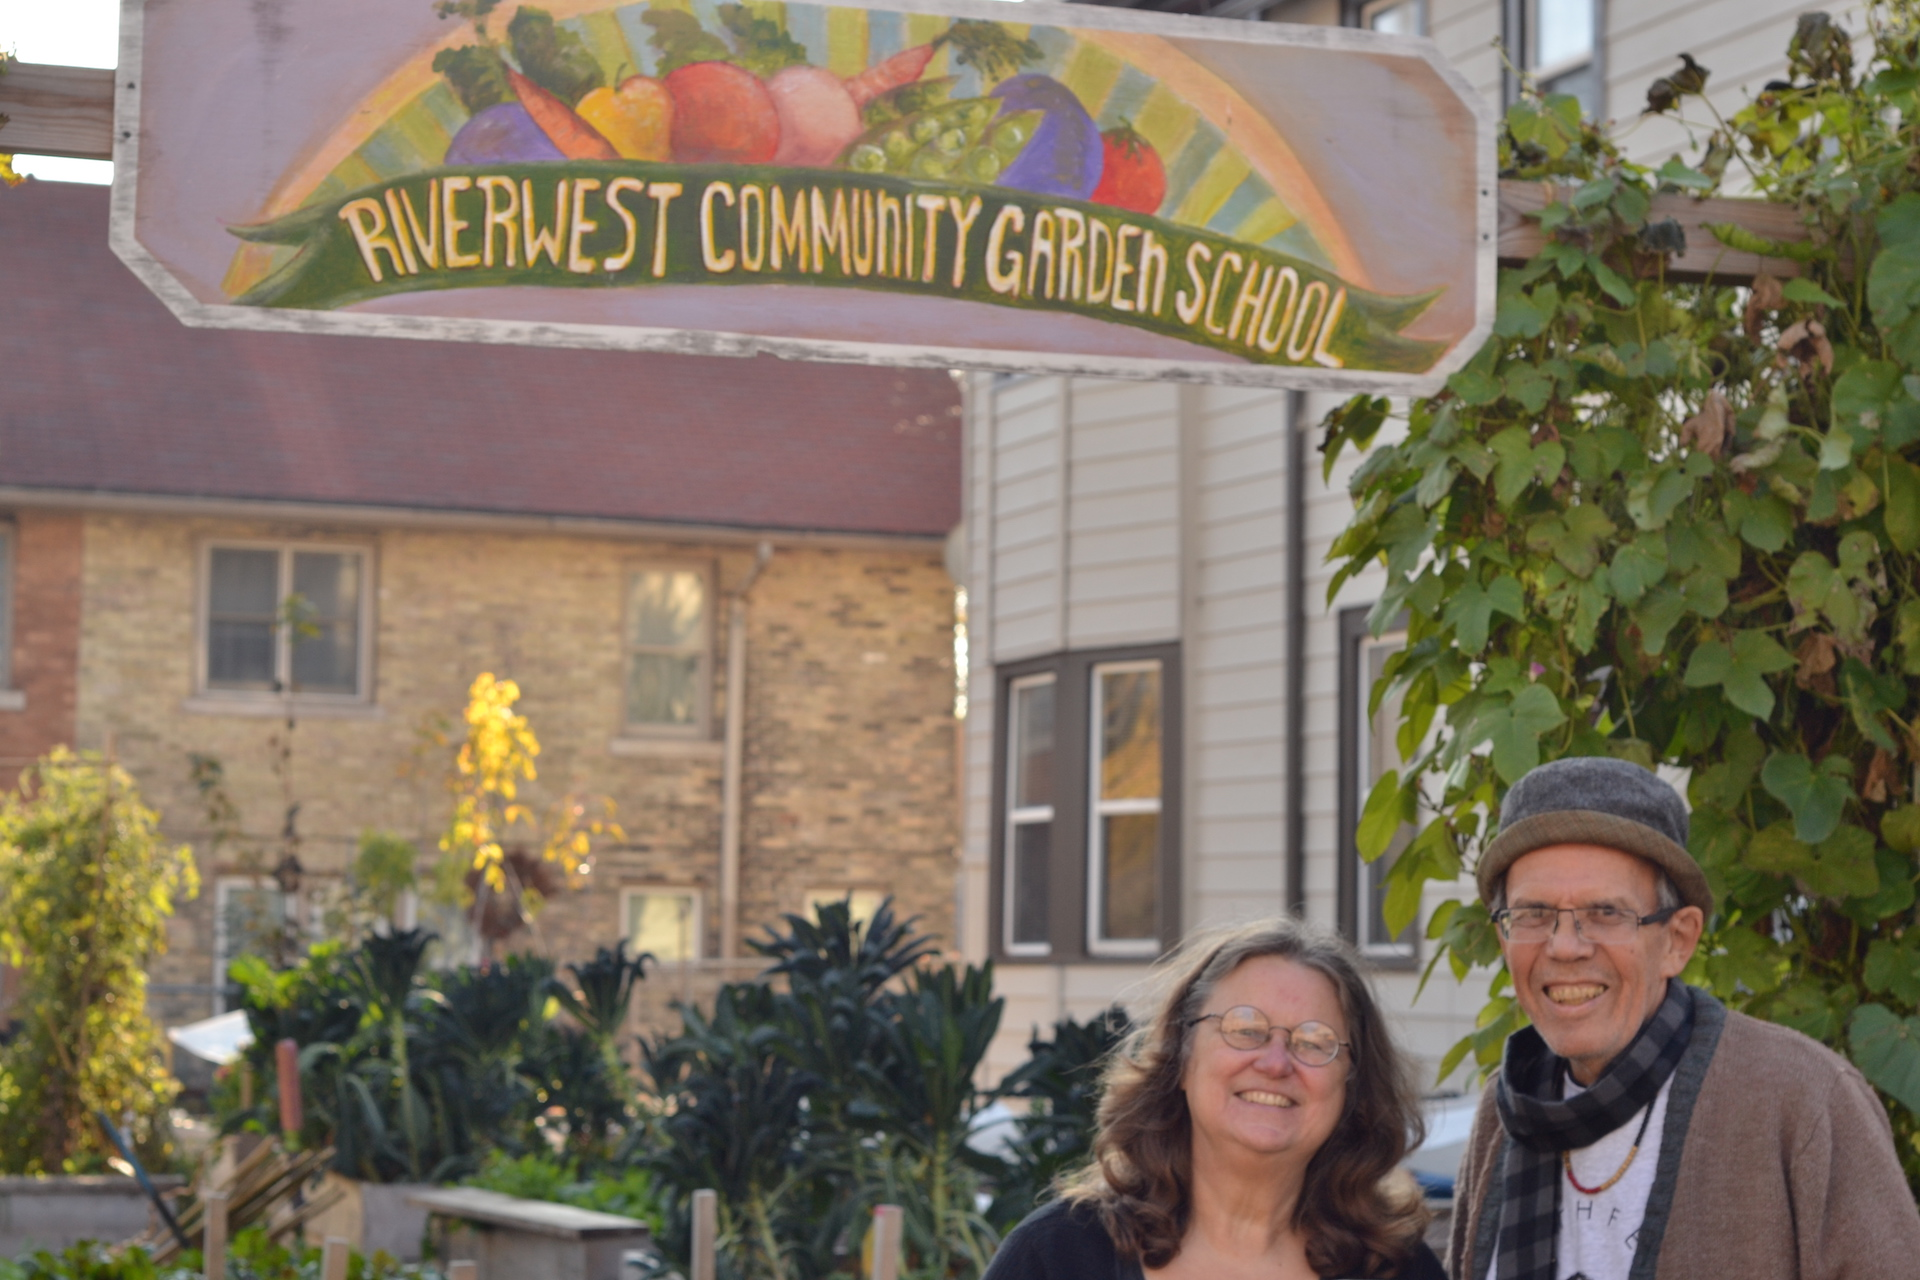 Janice Christensen and Dr. Dr. David Schemberger, administrators of the Riverwest Community Garden School.